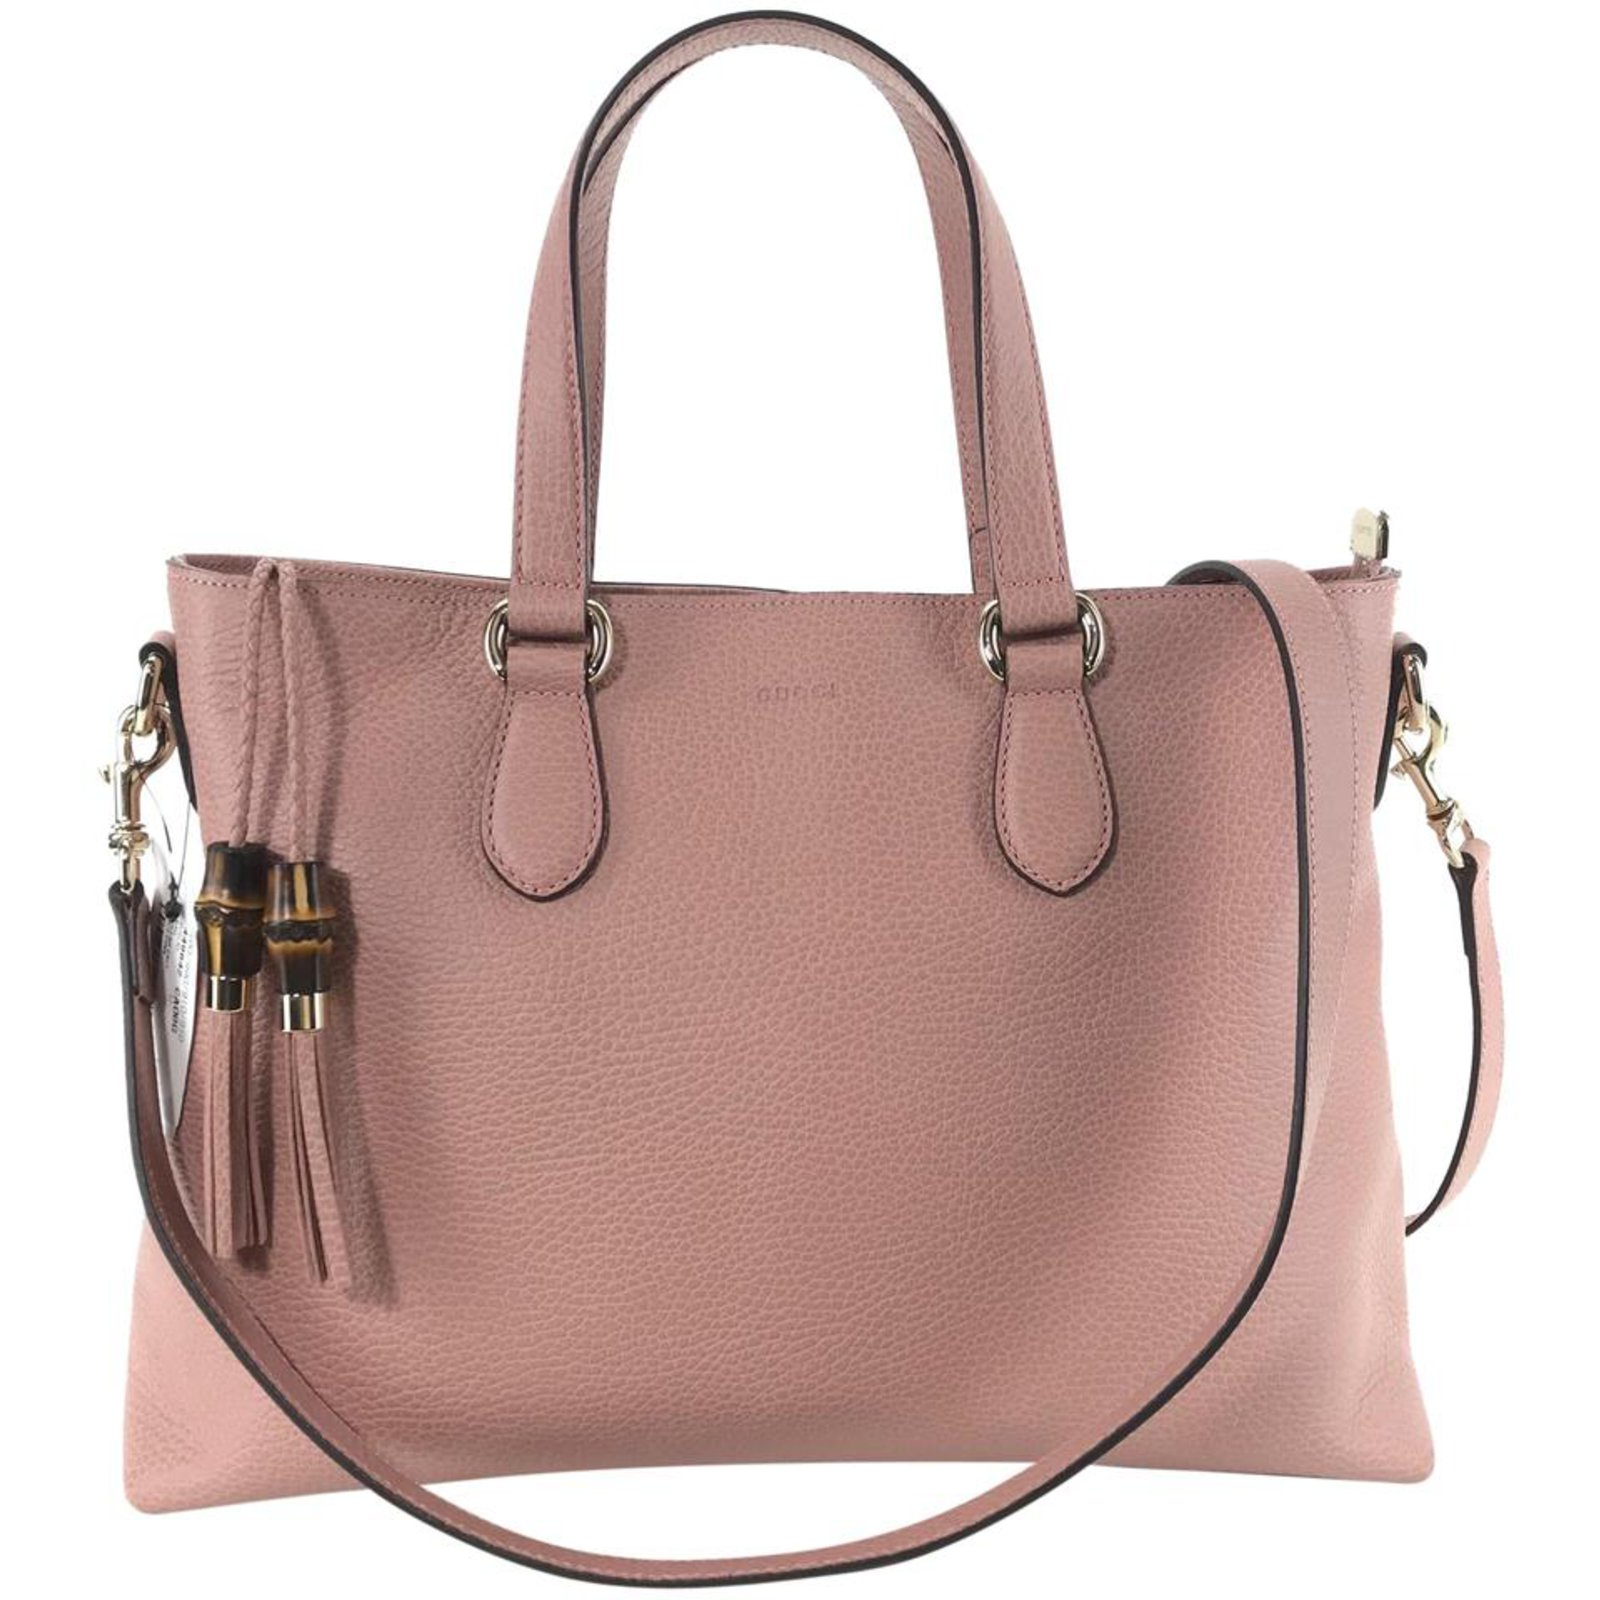 0be48f722a1 Pink Gucci Handbags - Foto Handbag All Collections Salonagafiya.Com